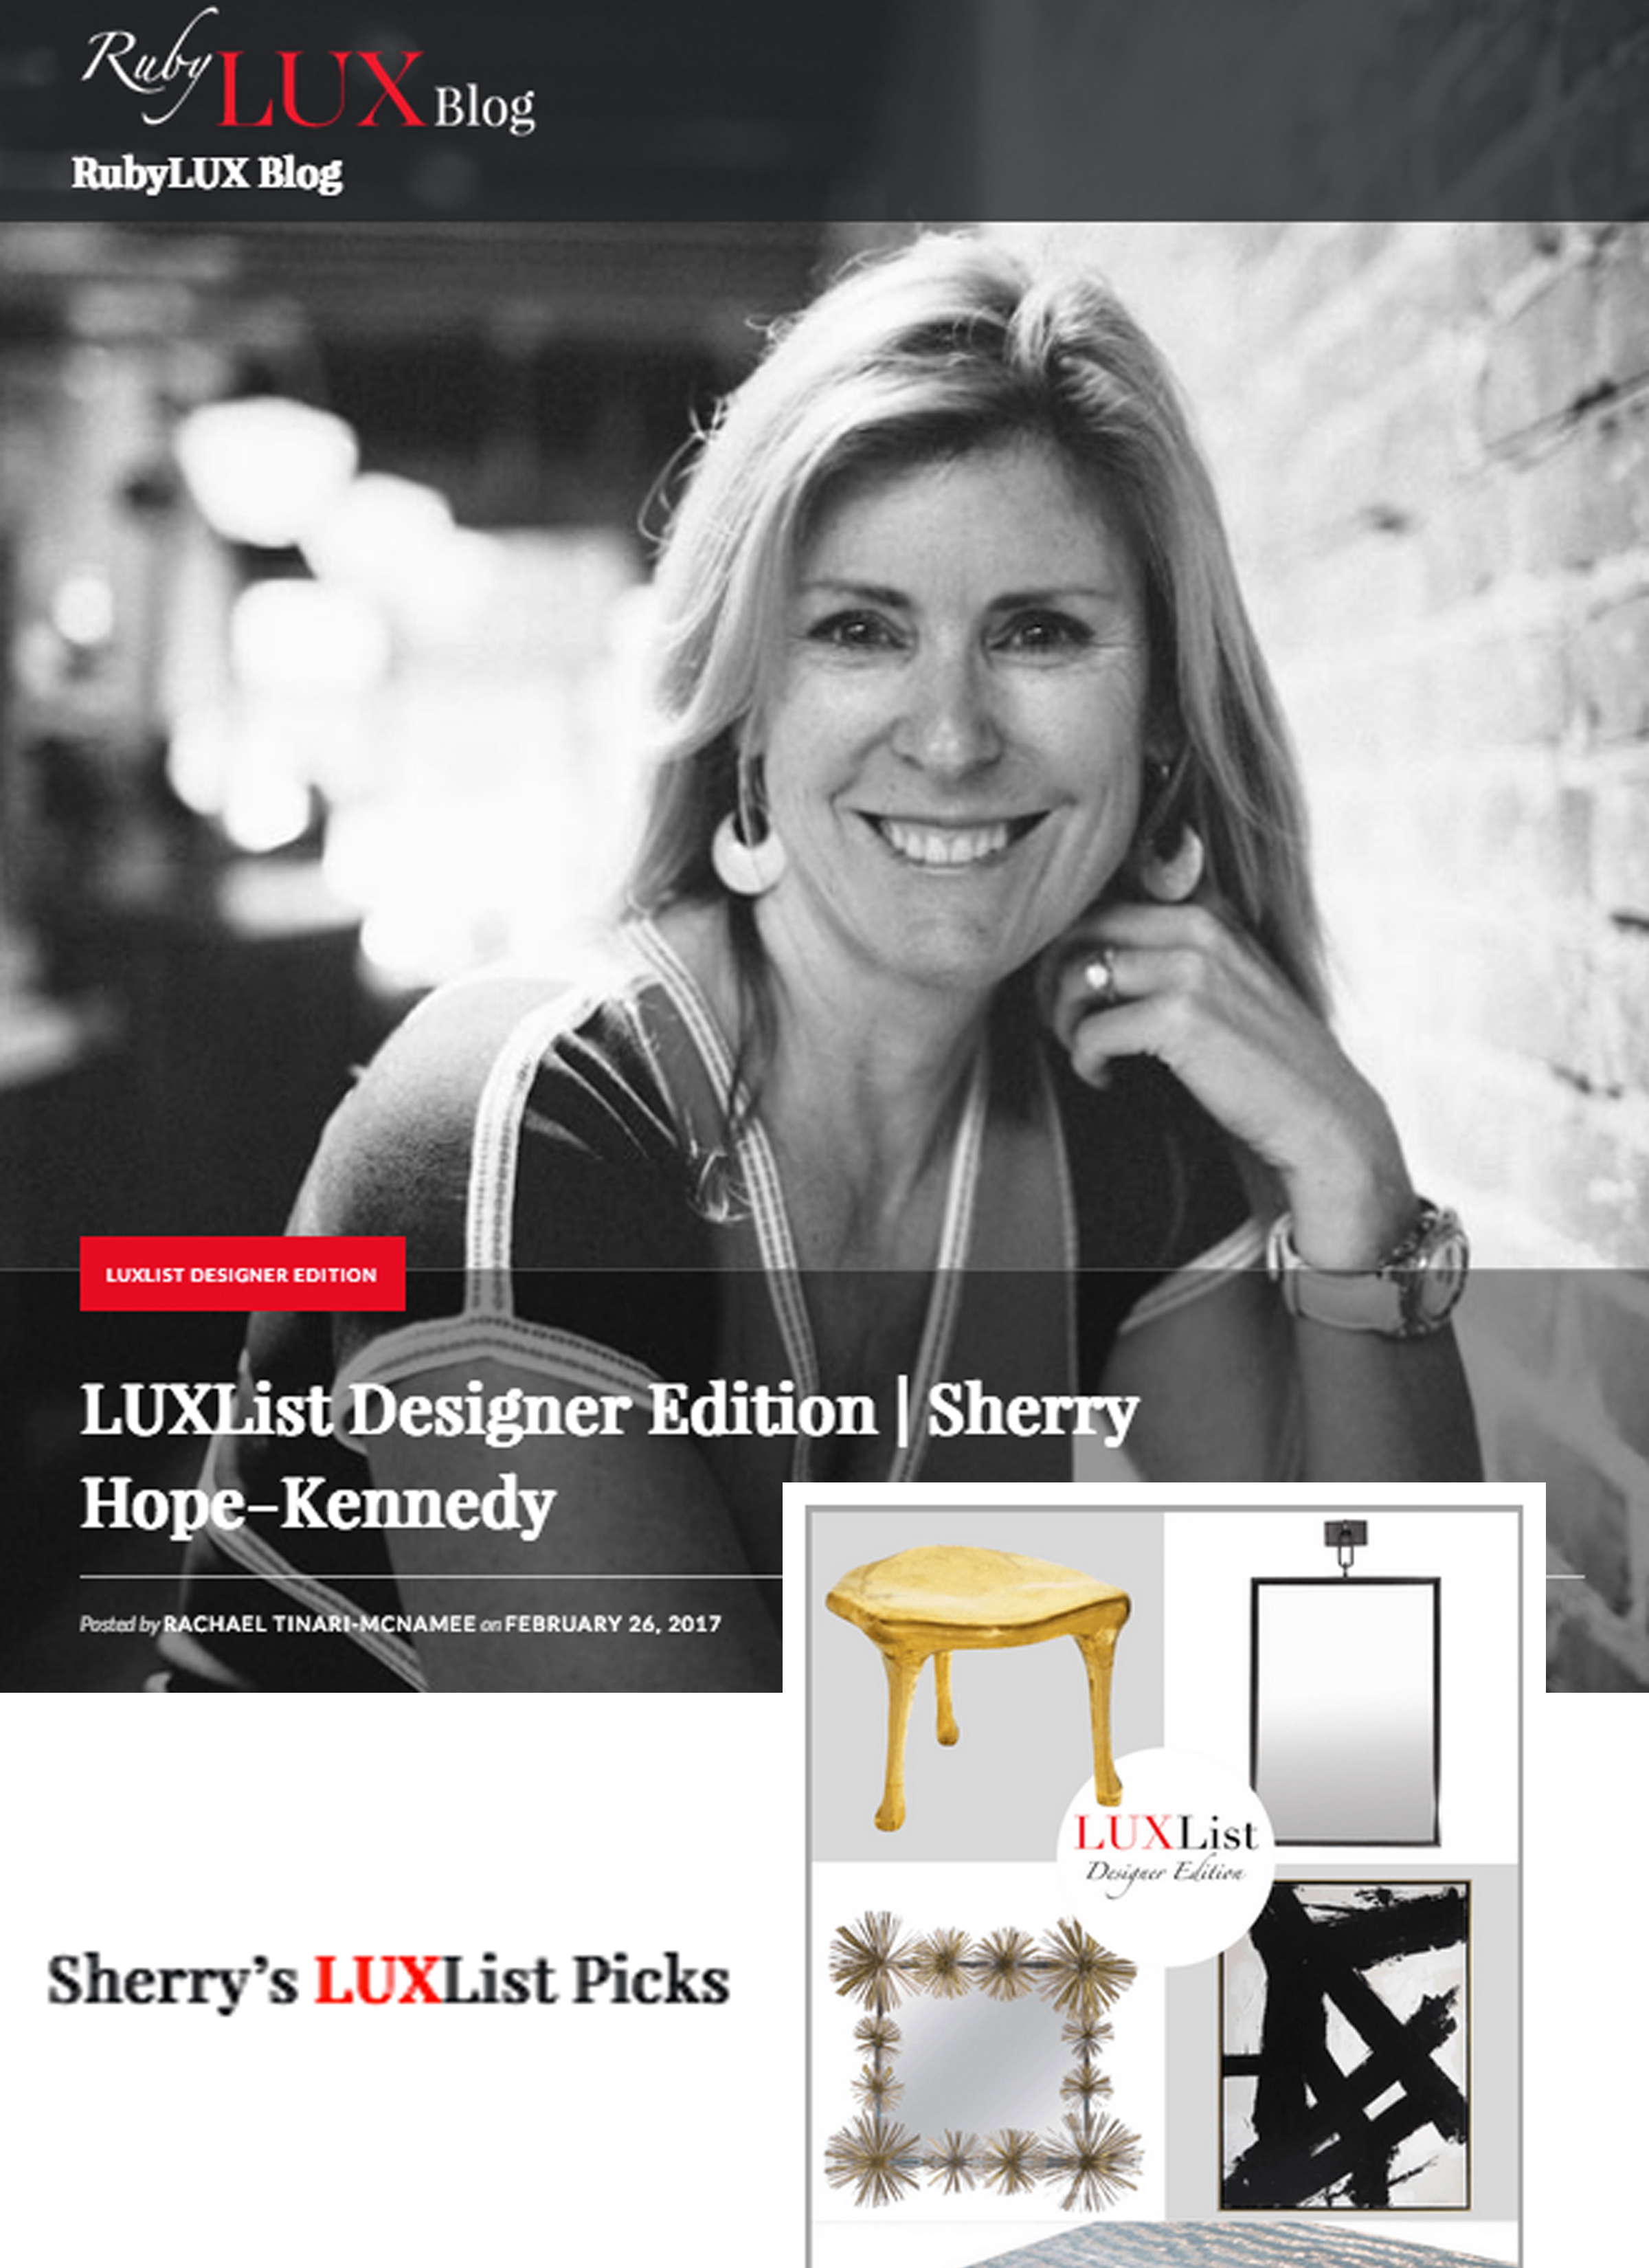 RubyLux - Sherry Hope-Kennedy featured on LUXList Designer Edition. Link: http://bit.ly/2q55vBH